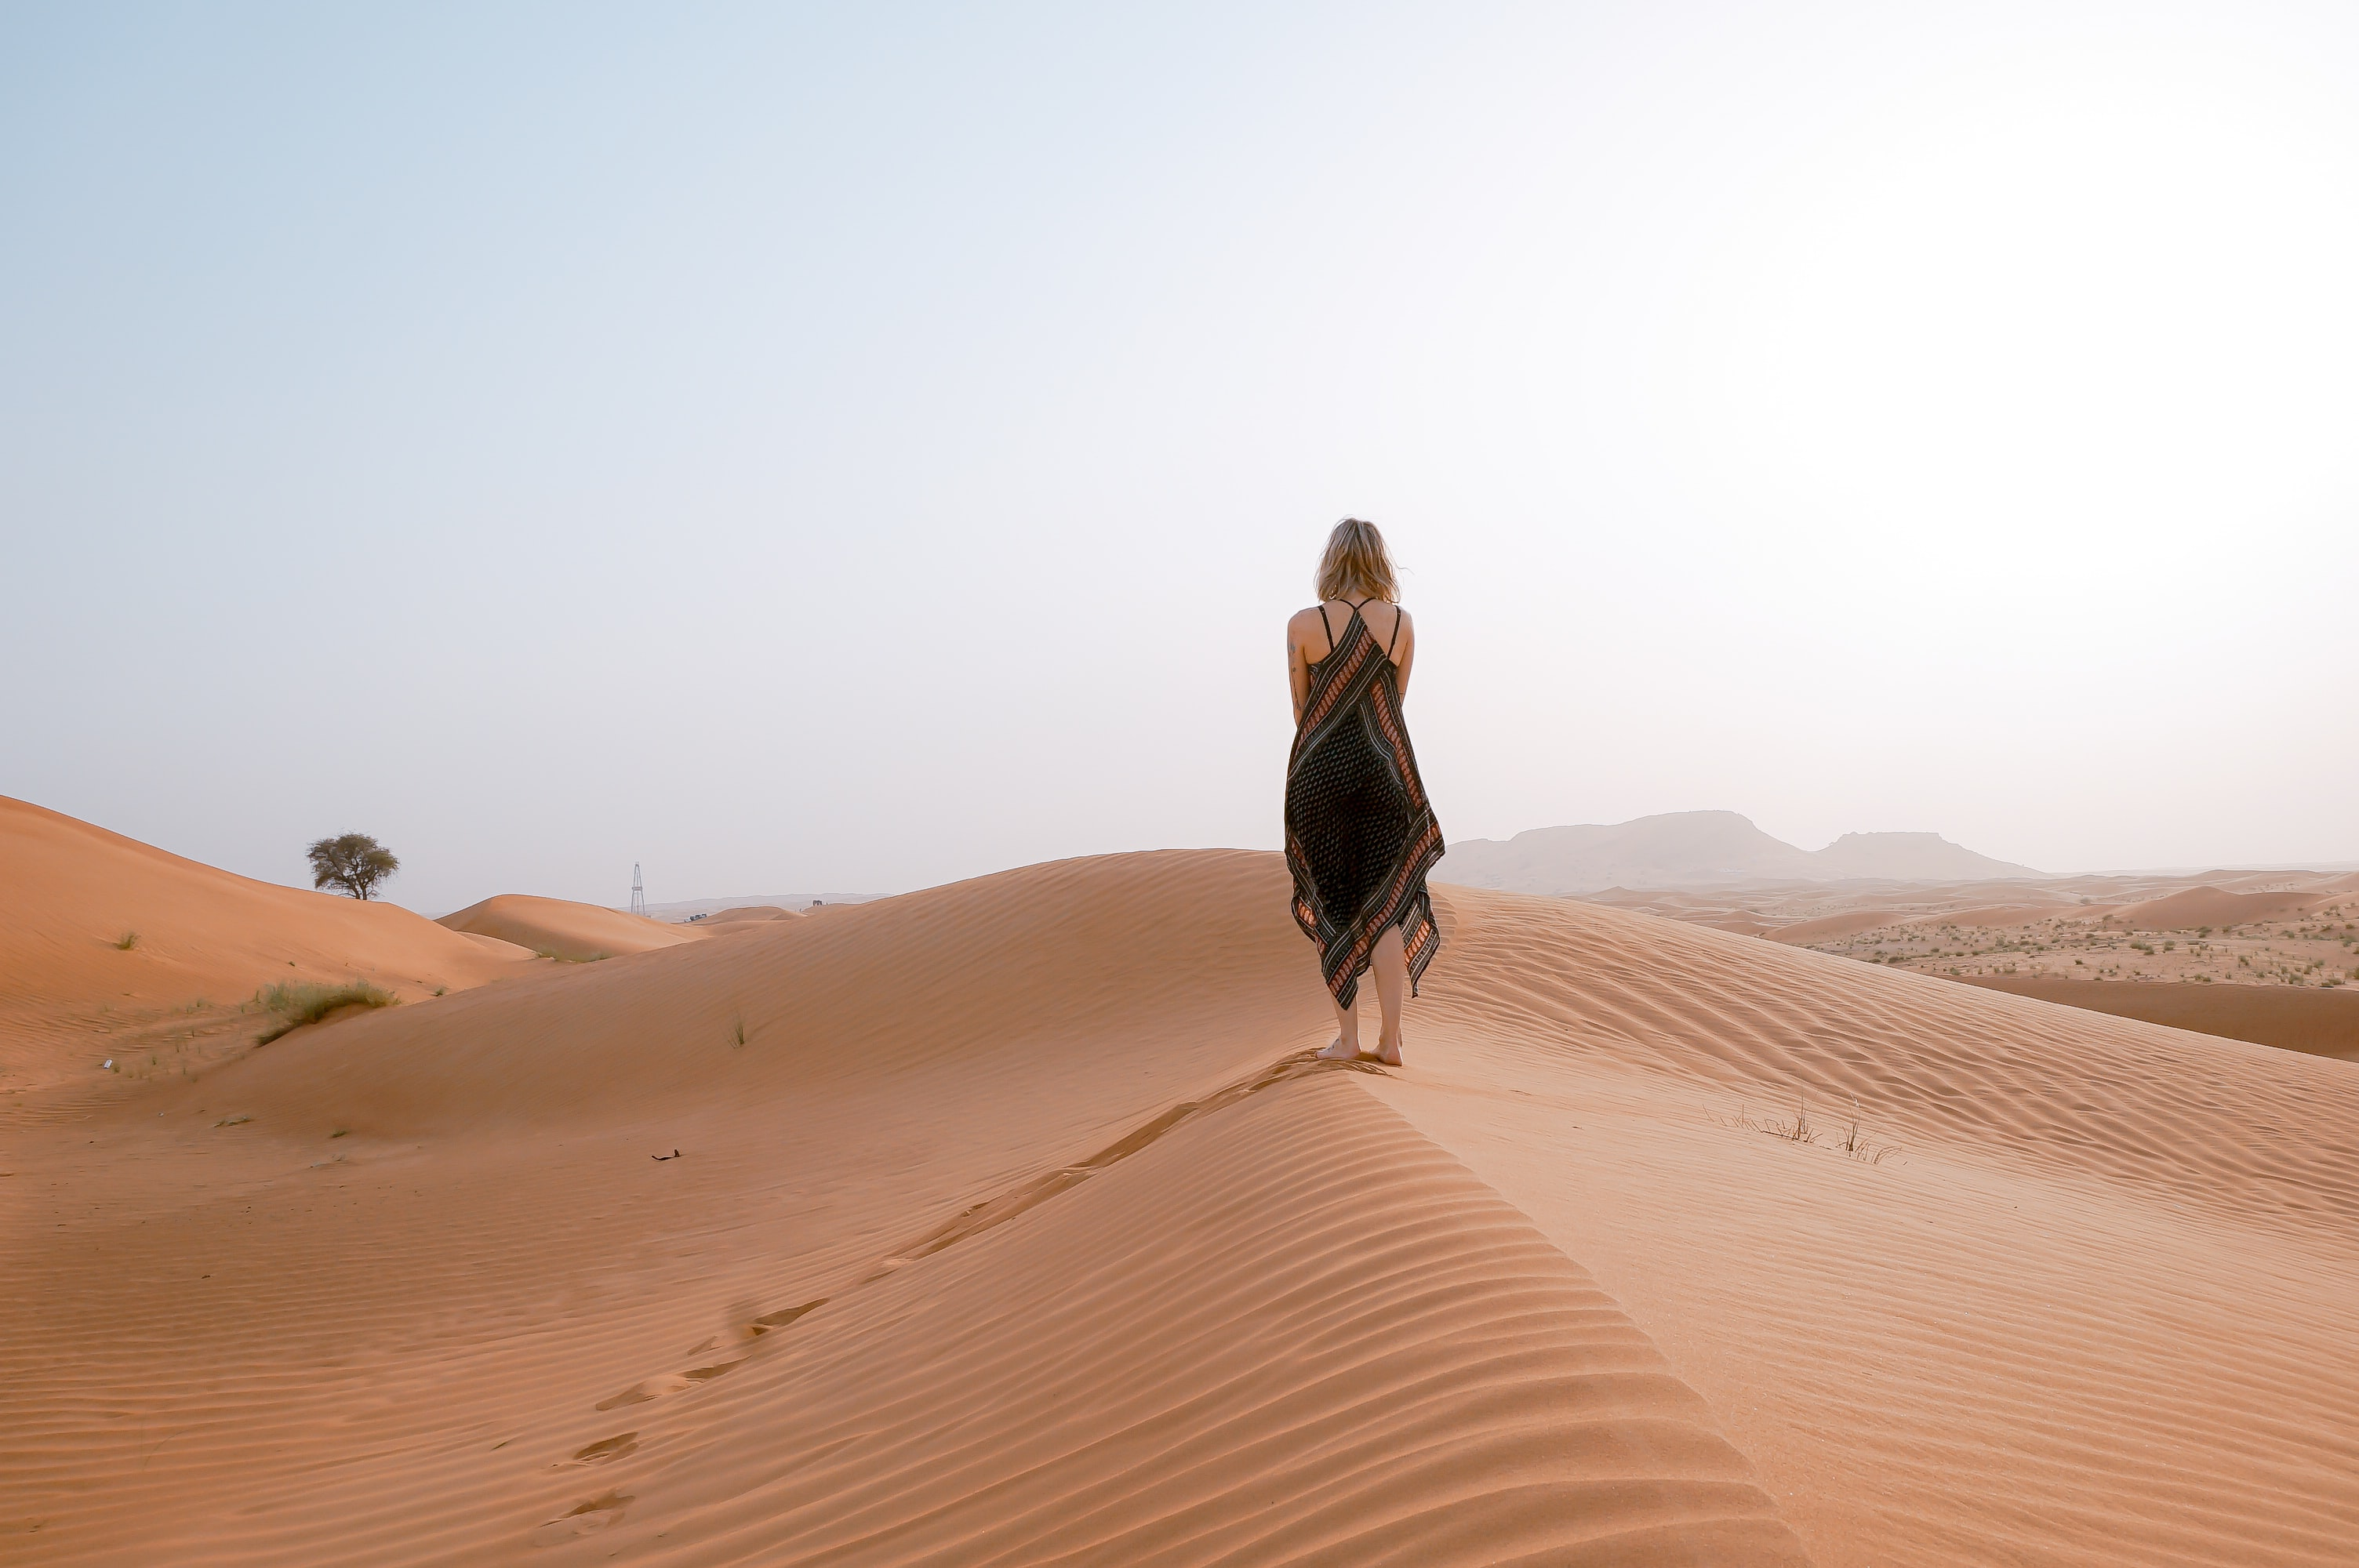 woman walking on desert during daytime